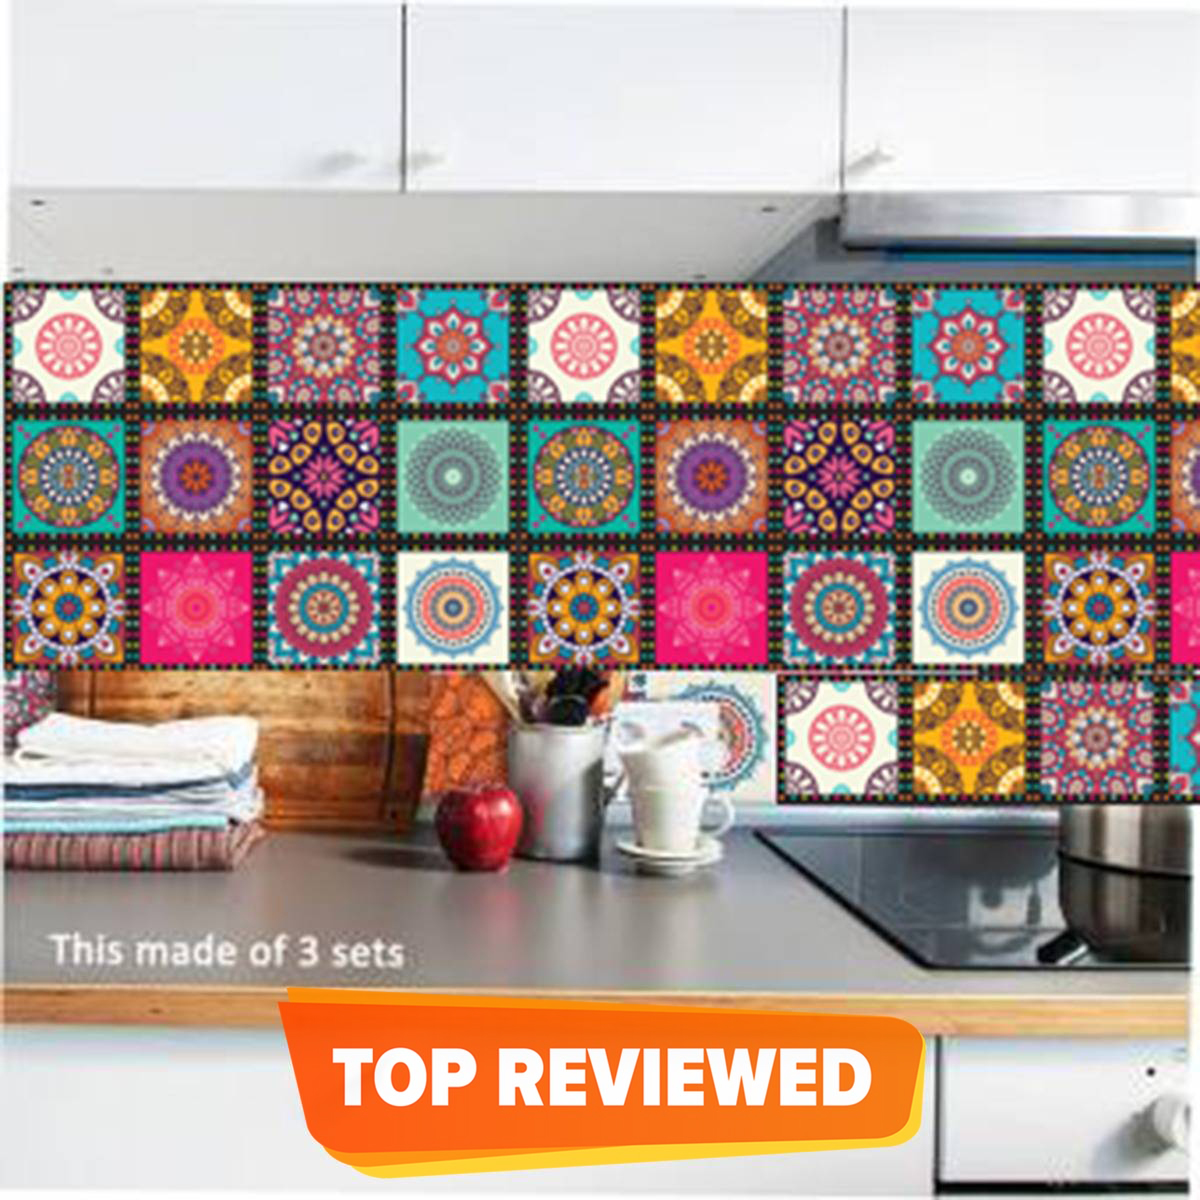 Wall Attraction Tile Stickers Pack of 12 Pieces for Home Décor Self Adhesive Peel Off Easy Clean Beautiful Wall Size 4 by 4 Inches